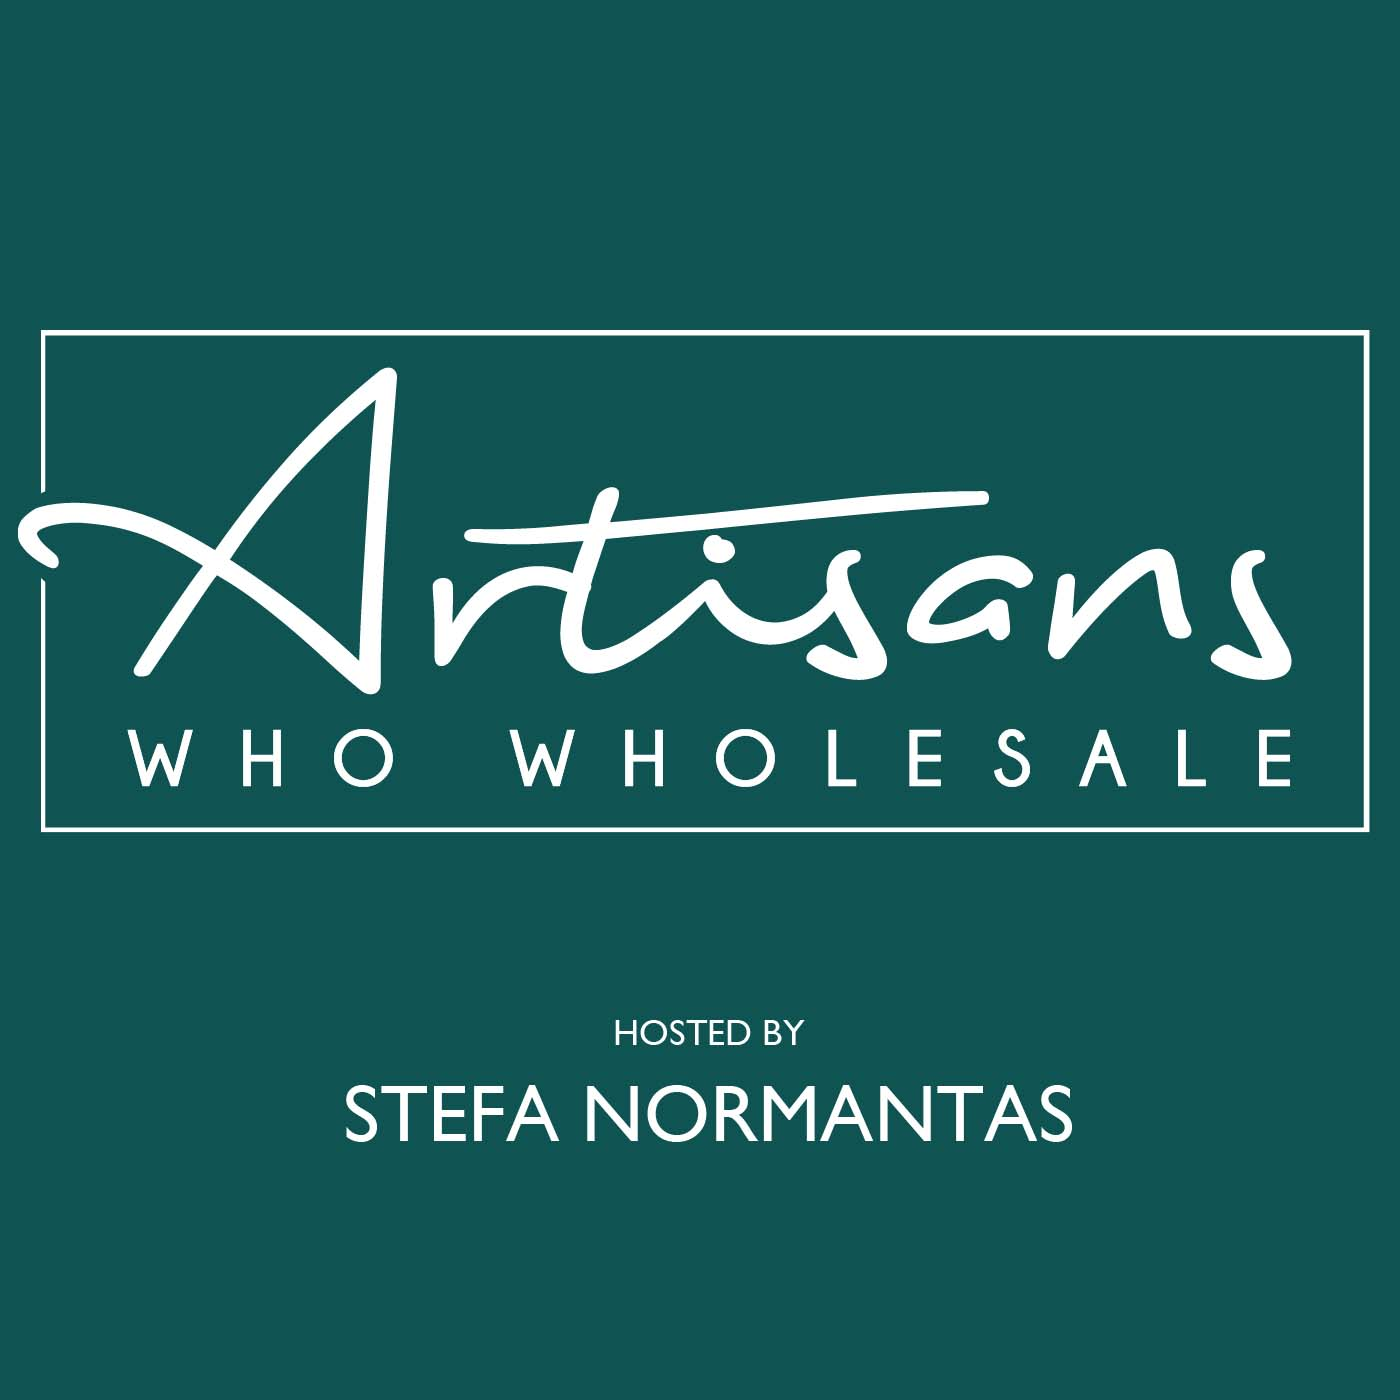 Artwork for podcast Artisans Who Wholesale hosted by Stefa Normantas